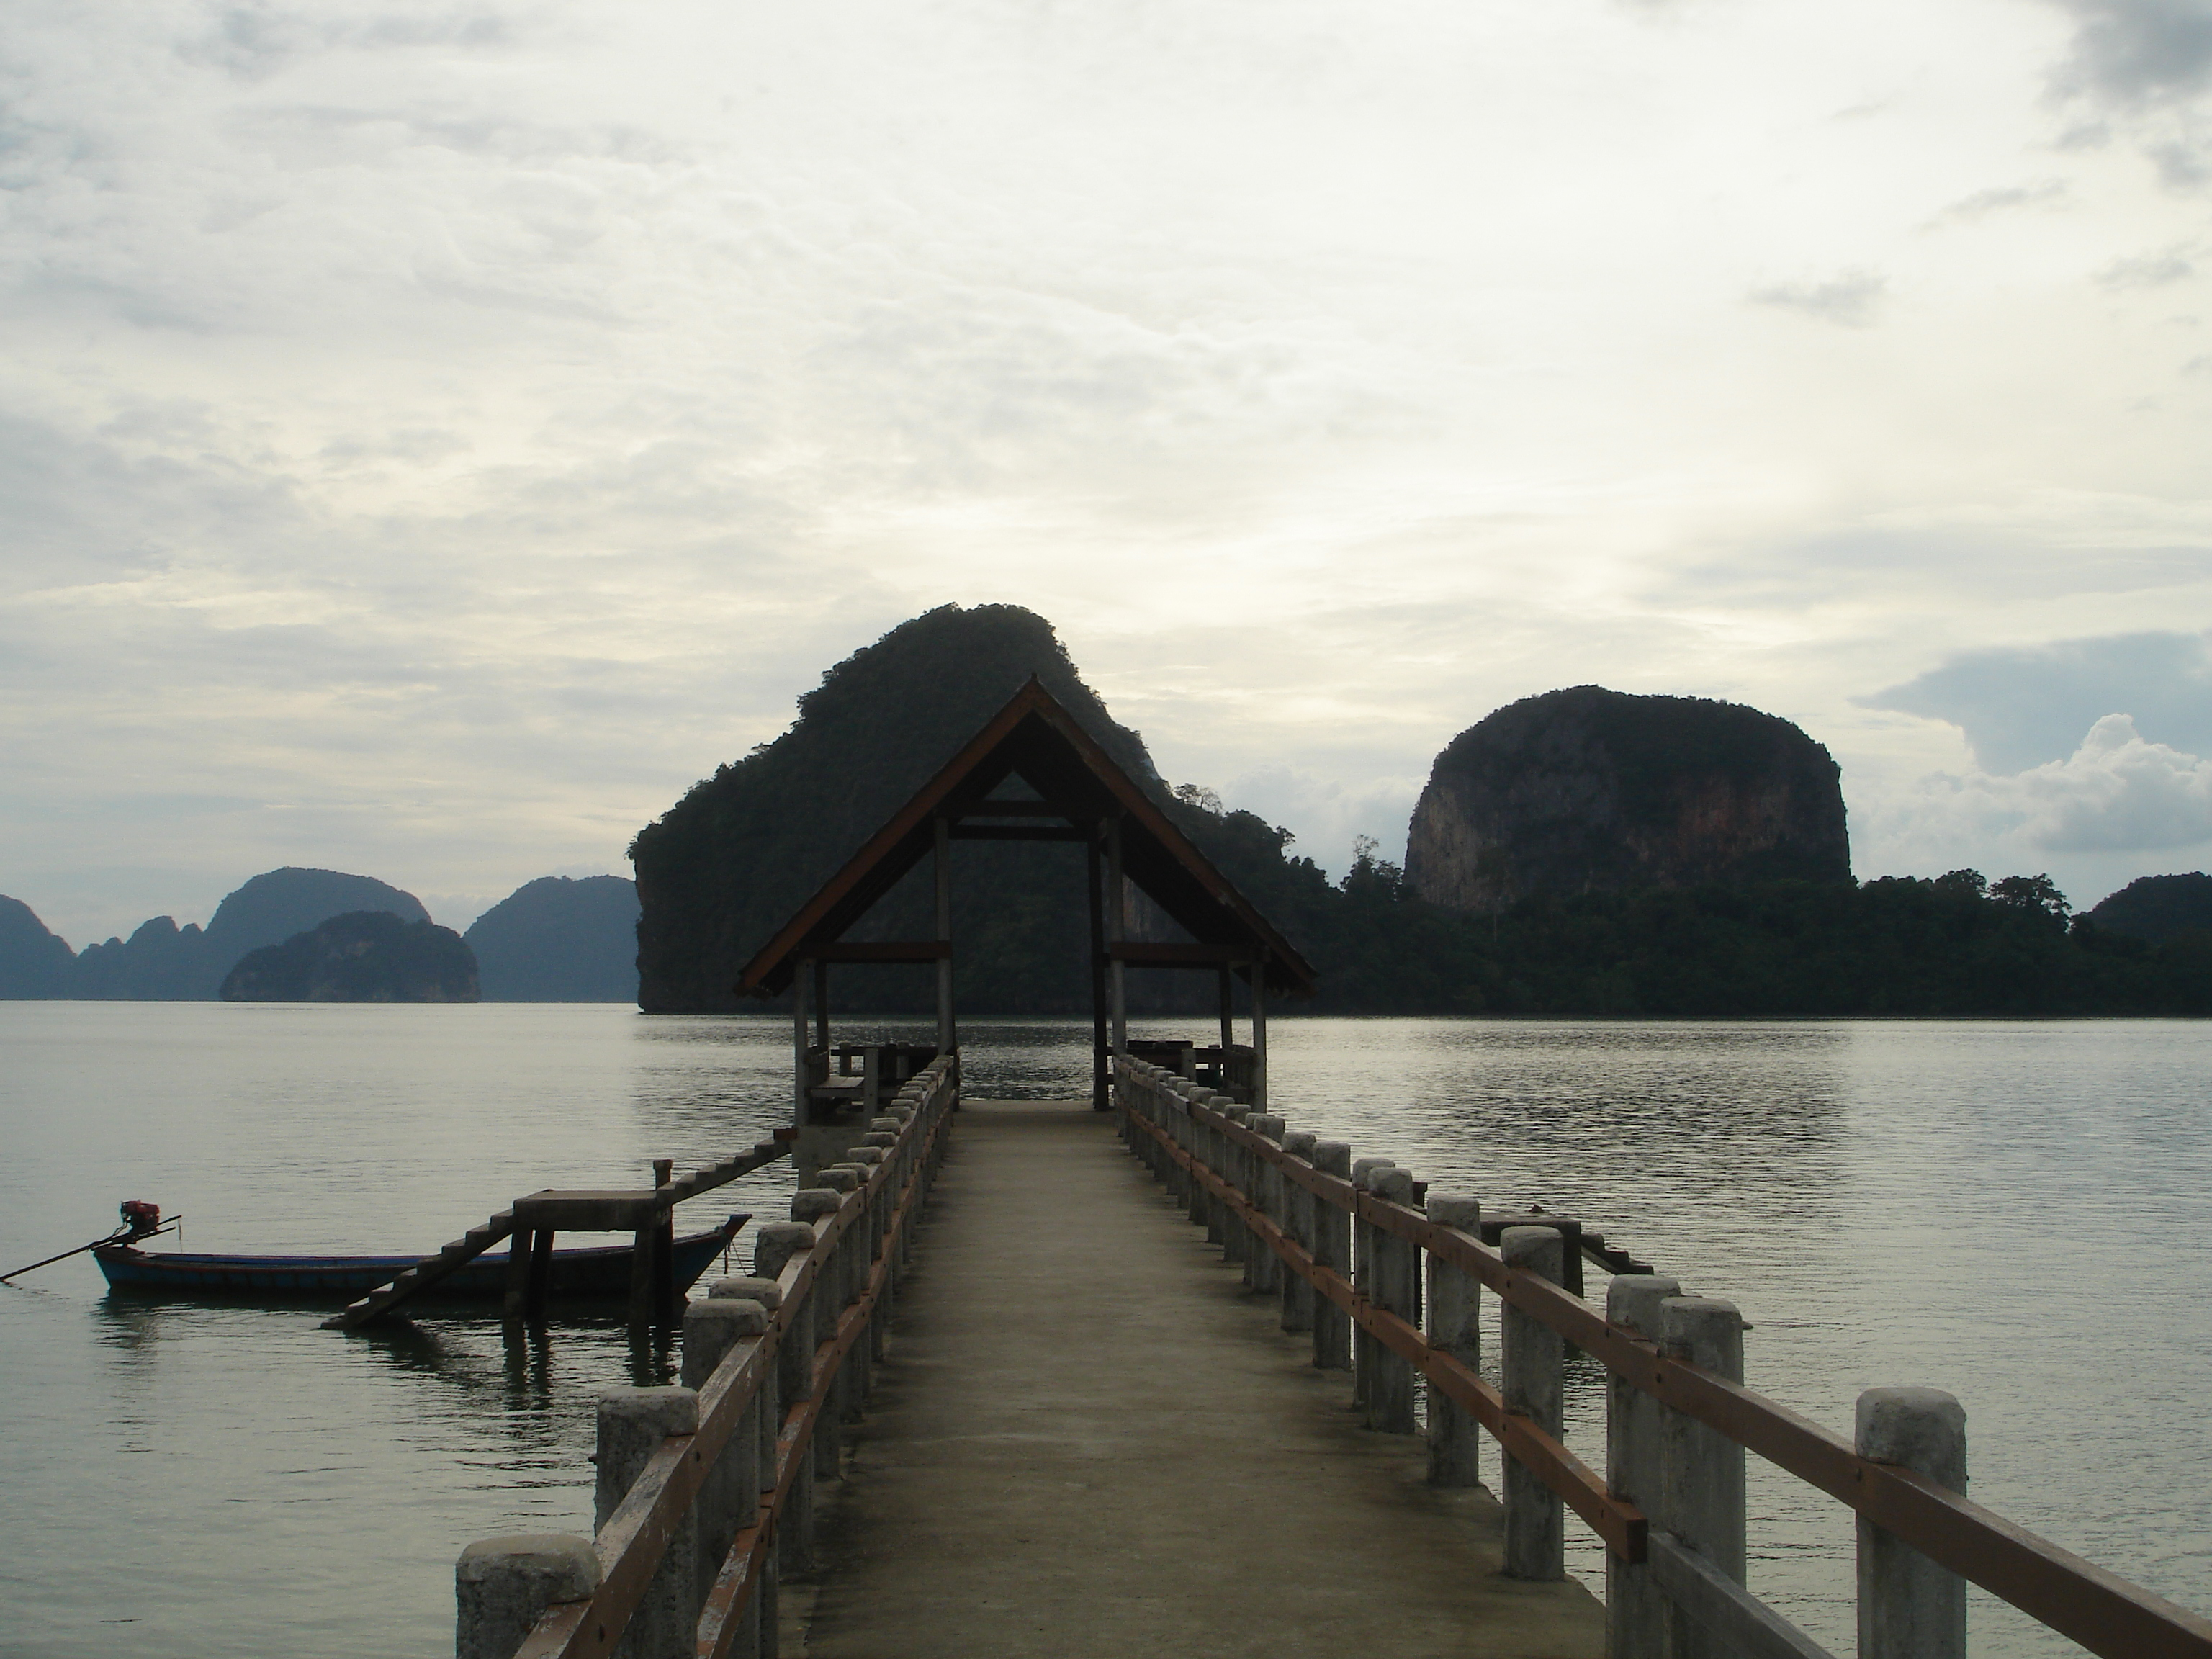 View to the west from Khao Phing Kan in Phang Nga Bay, Thailand. Photo taken by Mark Joseph Jochim on January 3, 2006.